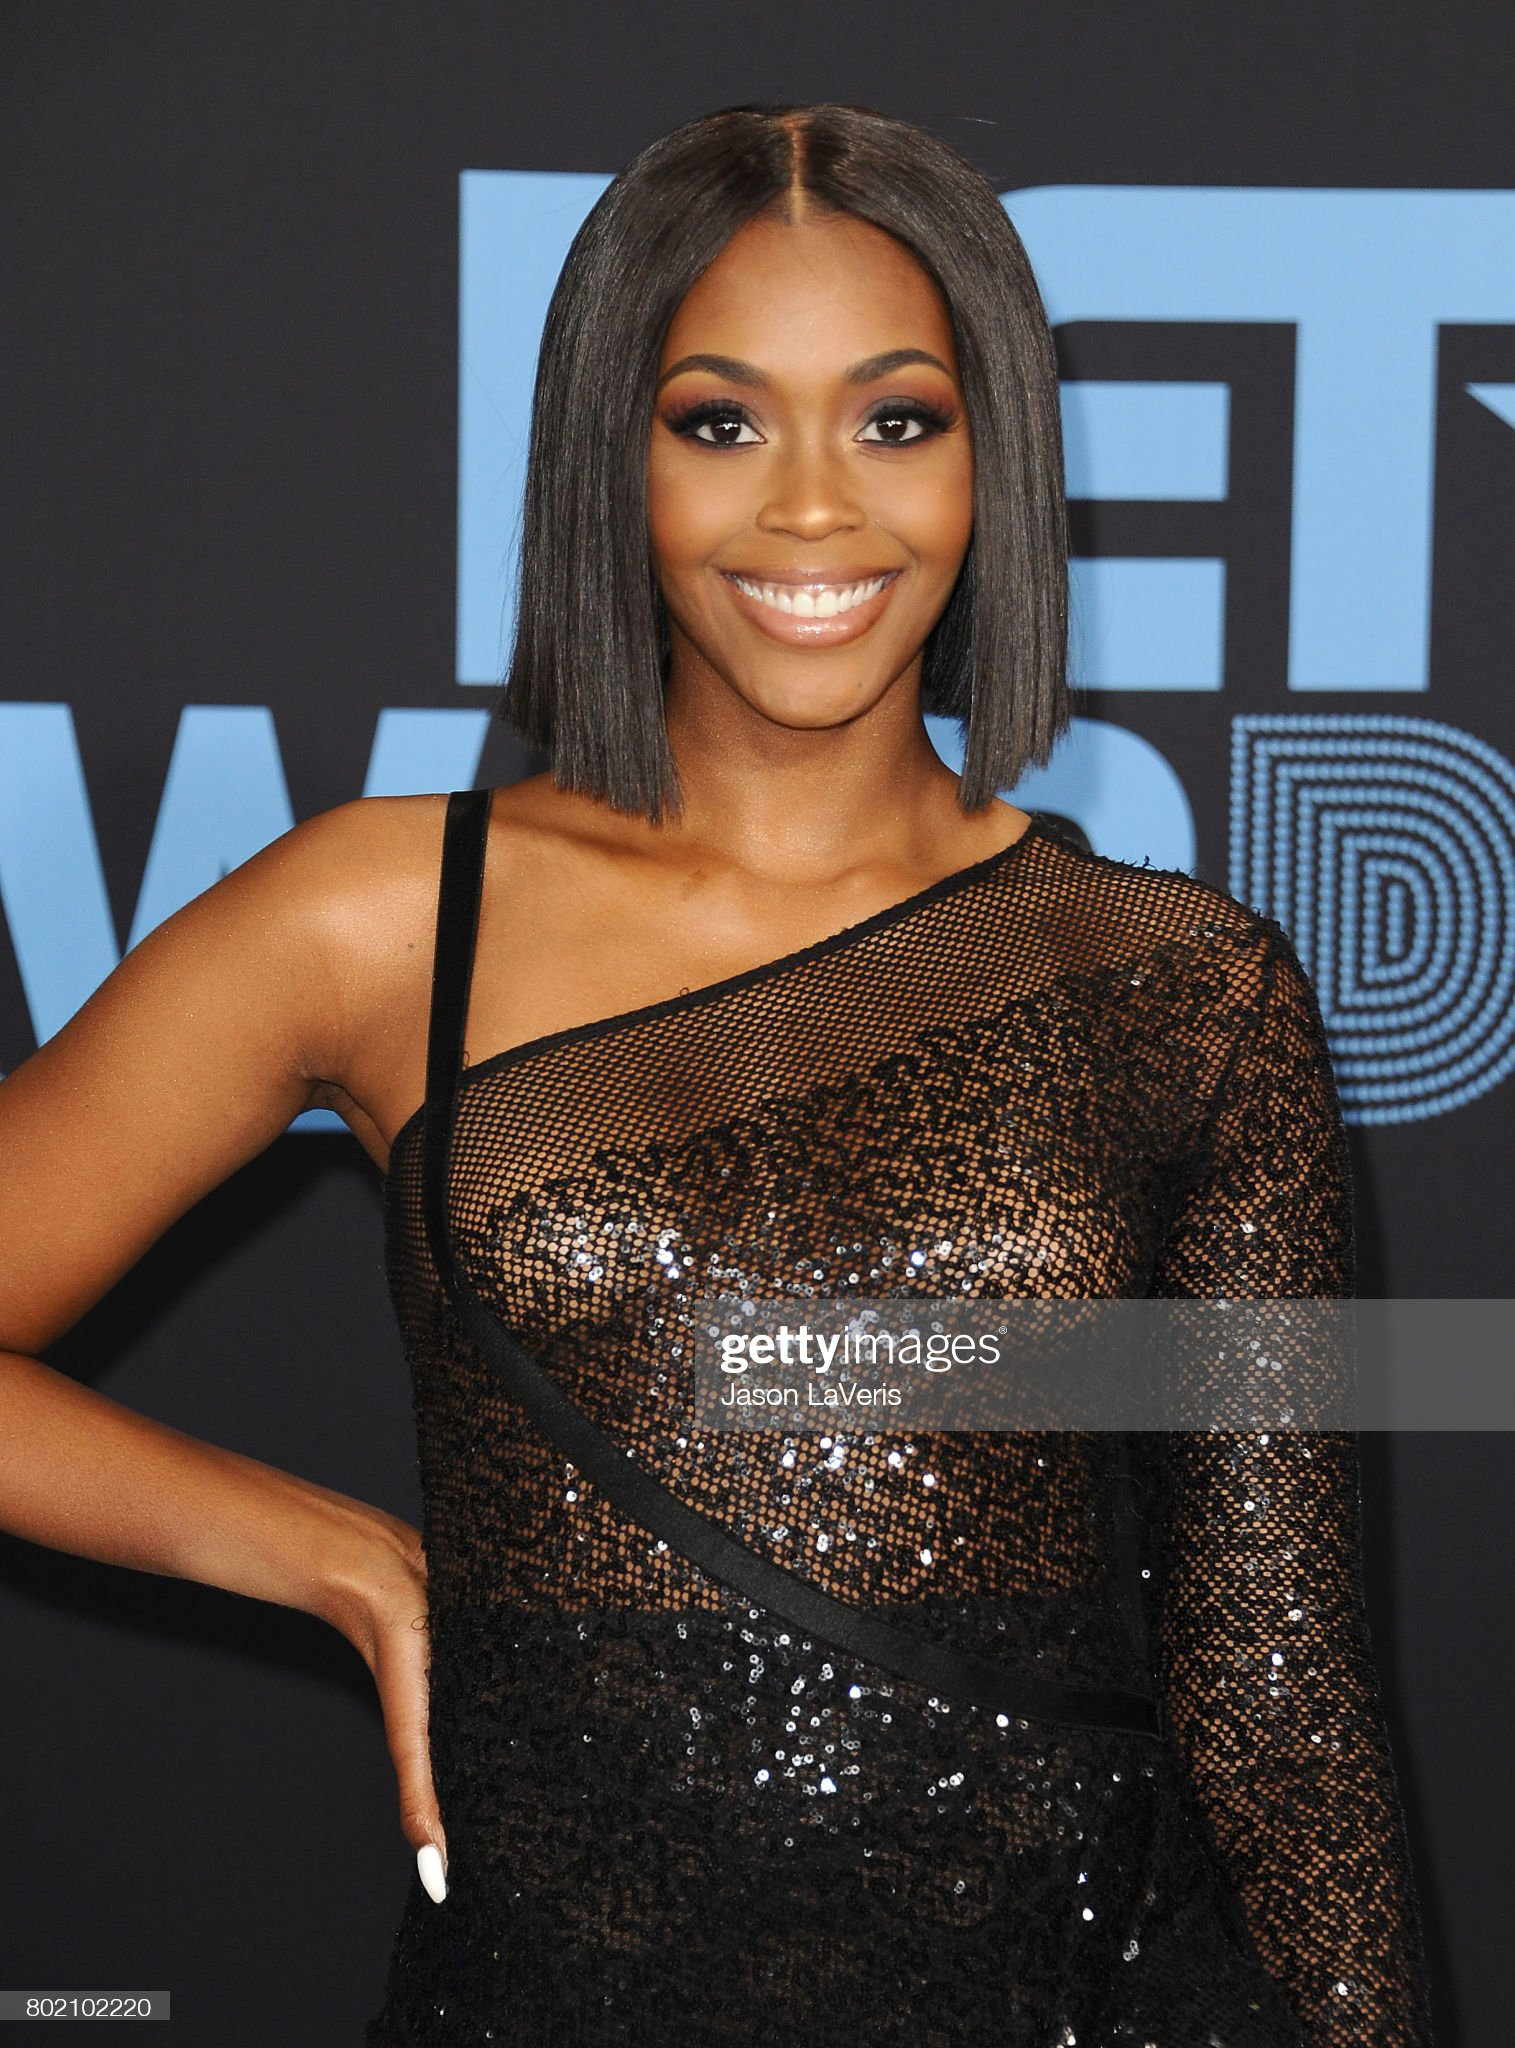 Top 80 Famosas Foroalturas - Página 2 Actress-nafessa-williams-attends-the-2017-bet-awards-at-microsoft-on-picture-id802102220?s=2048x2048